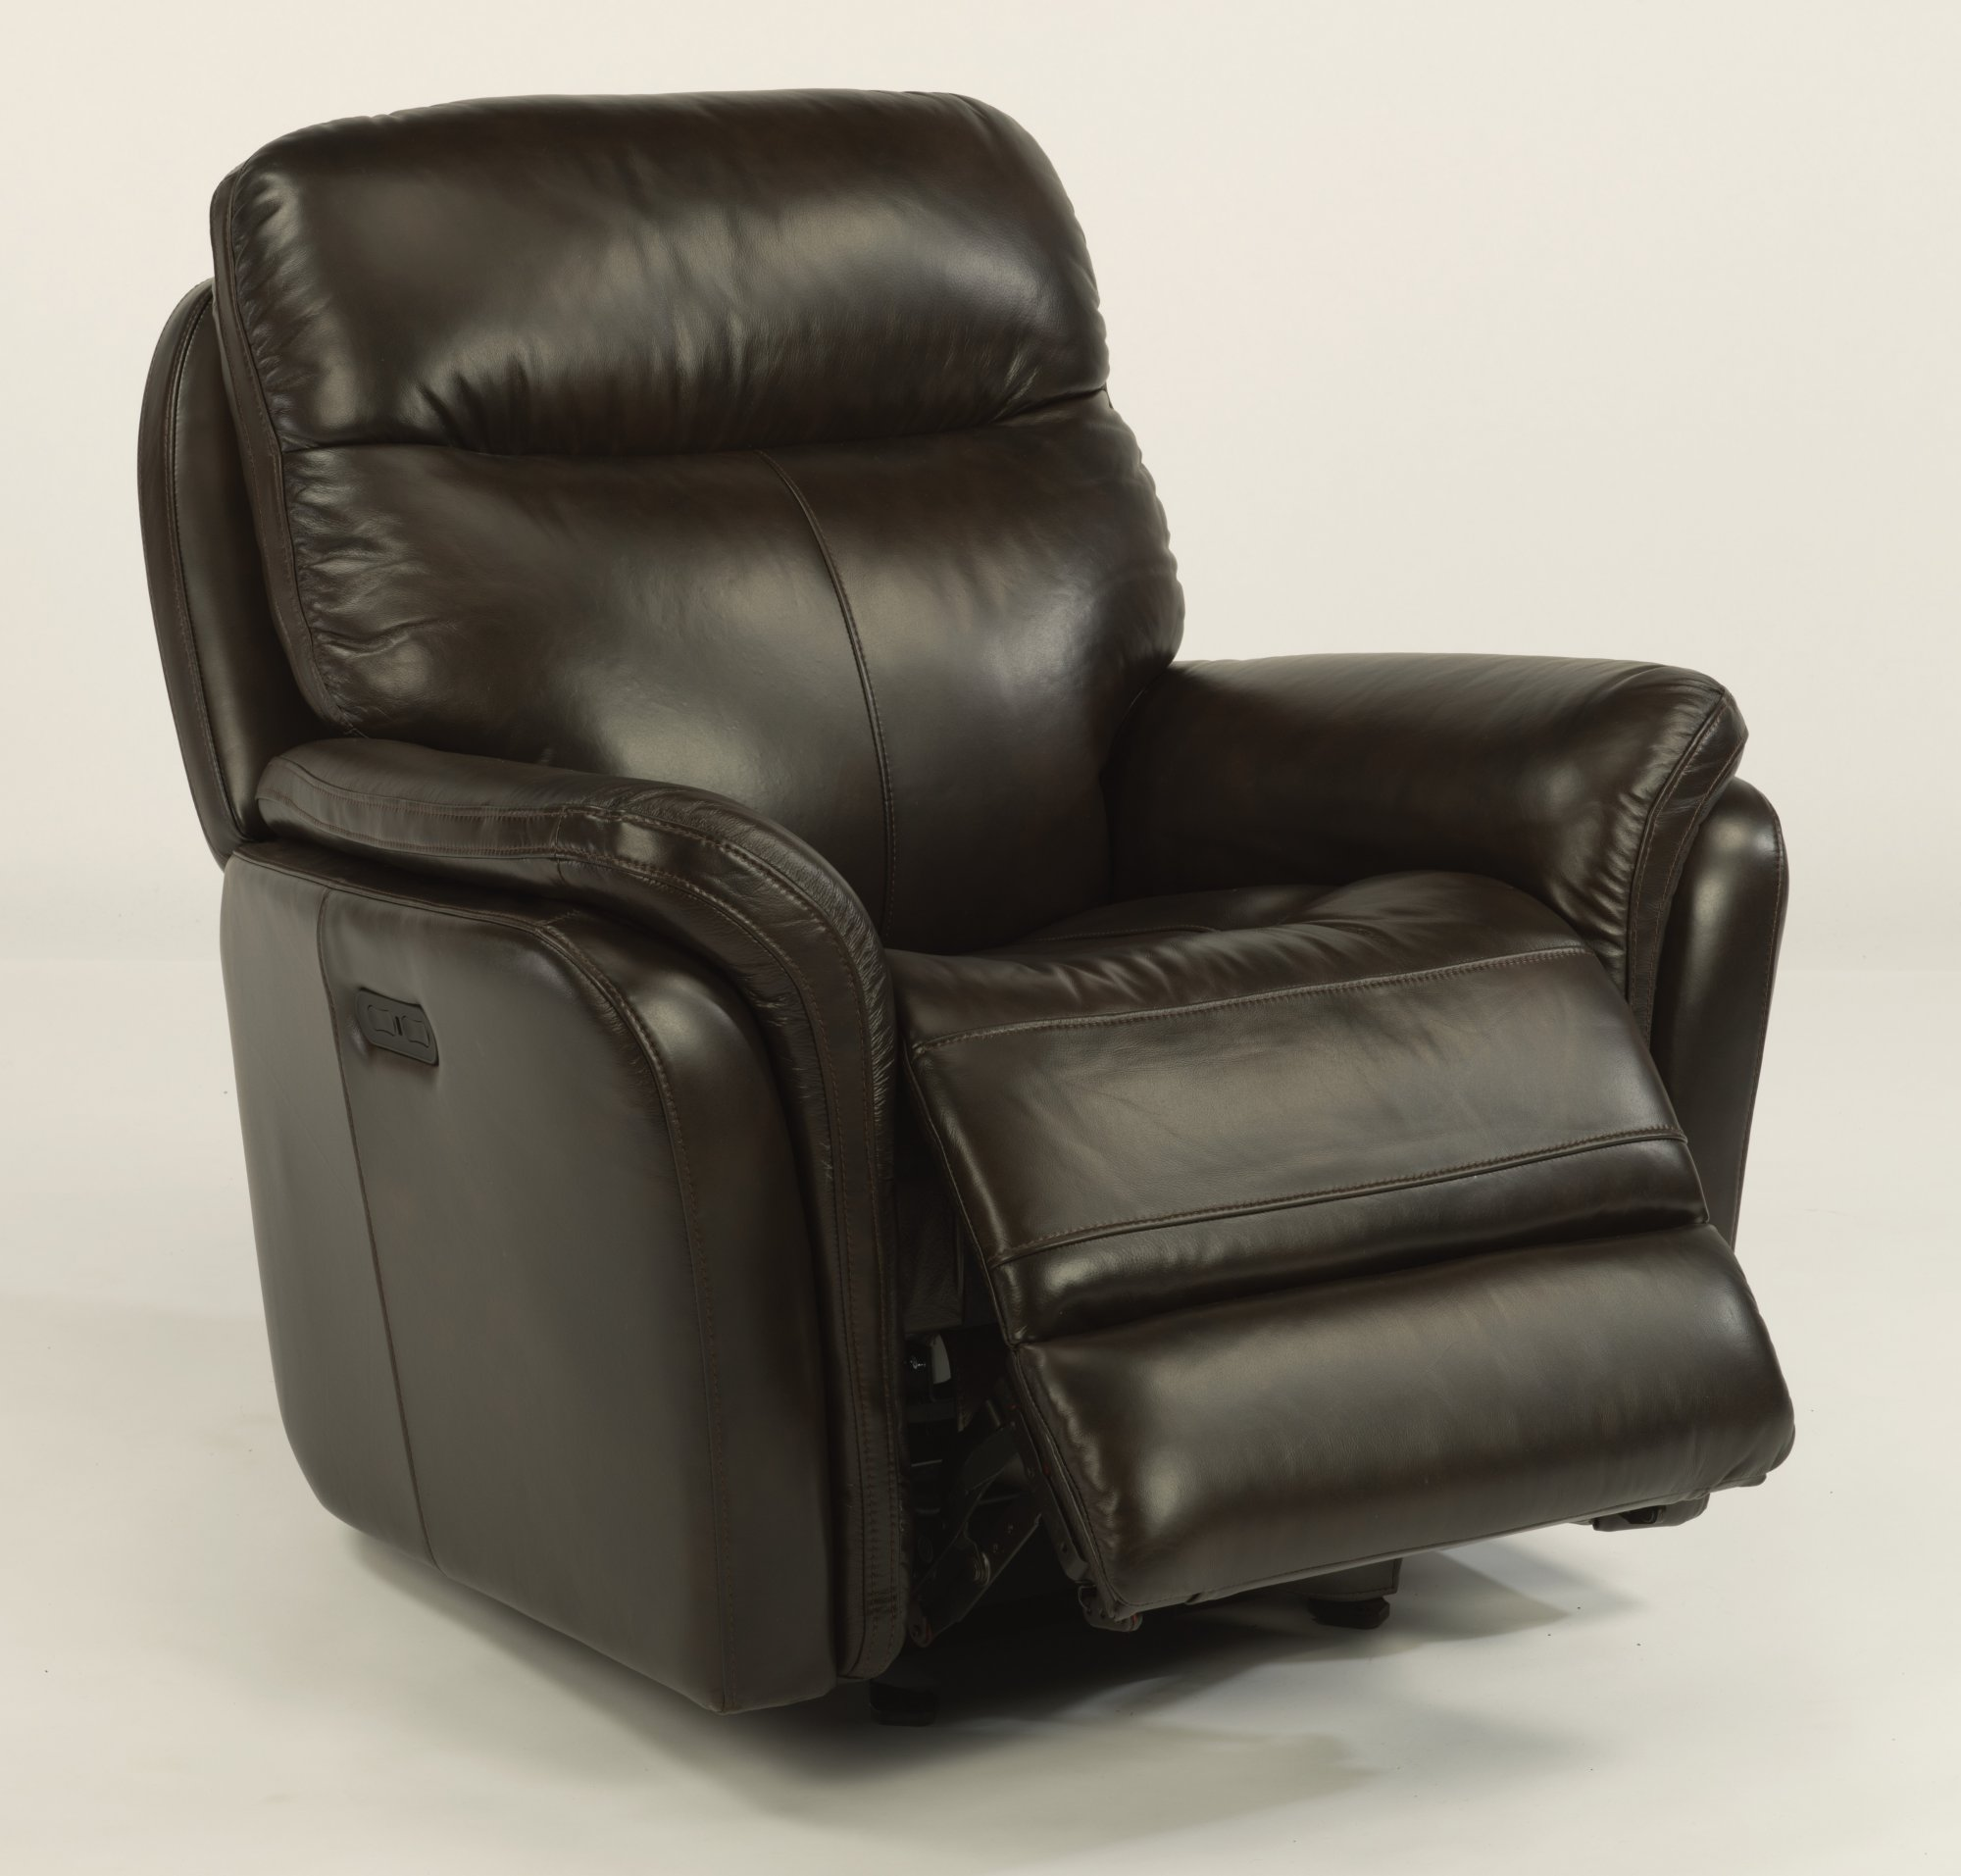 recliner blue pointe productdetail lehman zoom recliners htm chair comfort lift to navy hover traditional